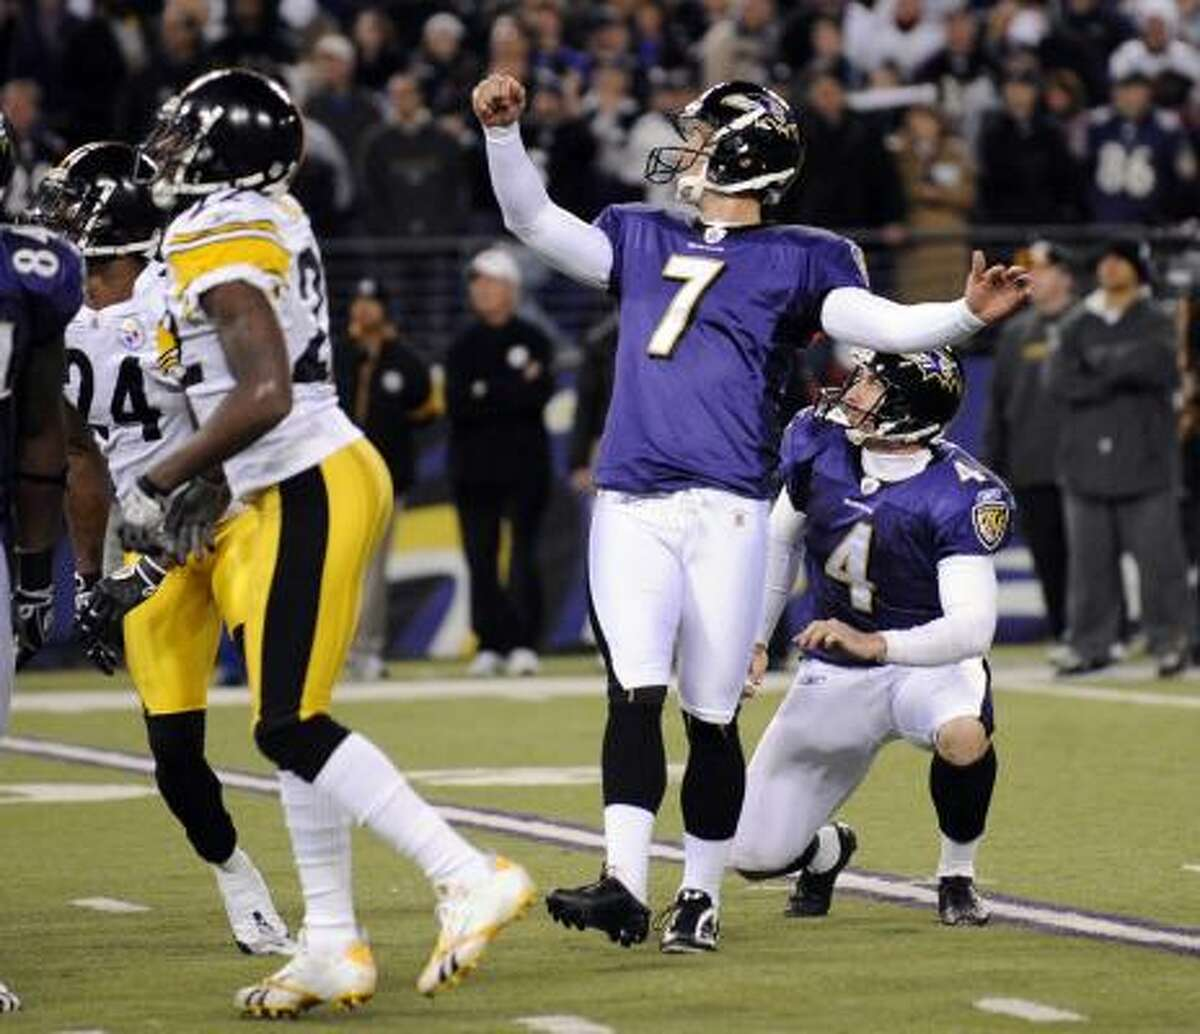 Nov. 29: Ravens 20, Steelers 17 (OT) Ravens kicker Billy Cundiff (7) kicked a 29-yard field goal in overtime to give Baltimore a much-needed win.